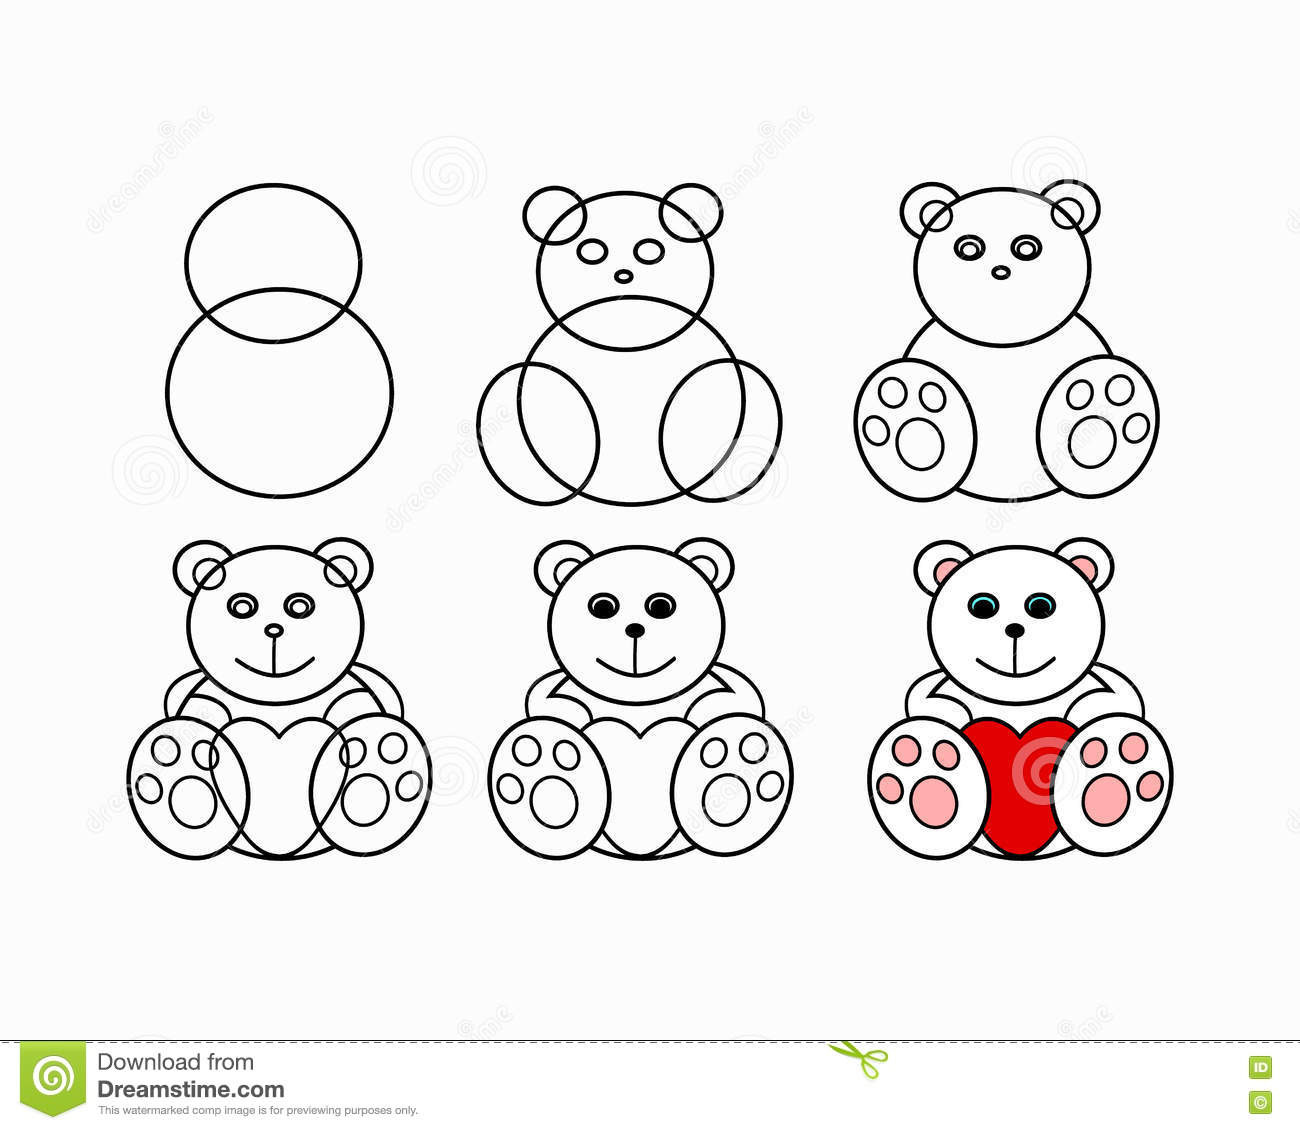 Drawing lesson bear stock vector. Illustration of hand